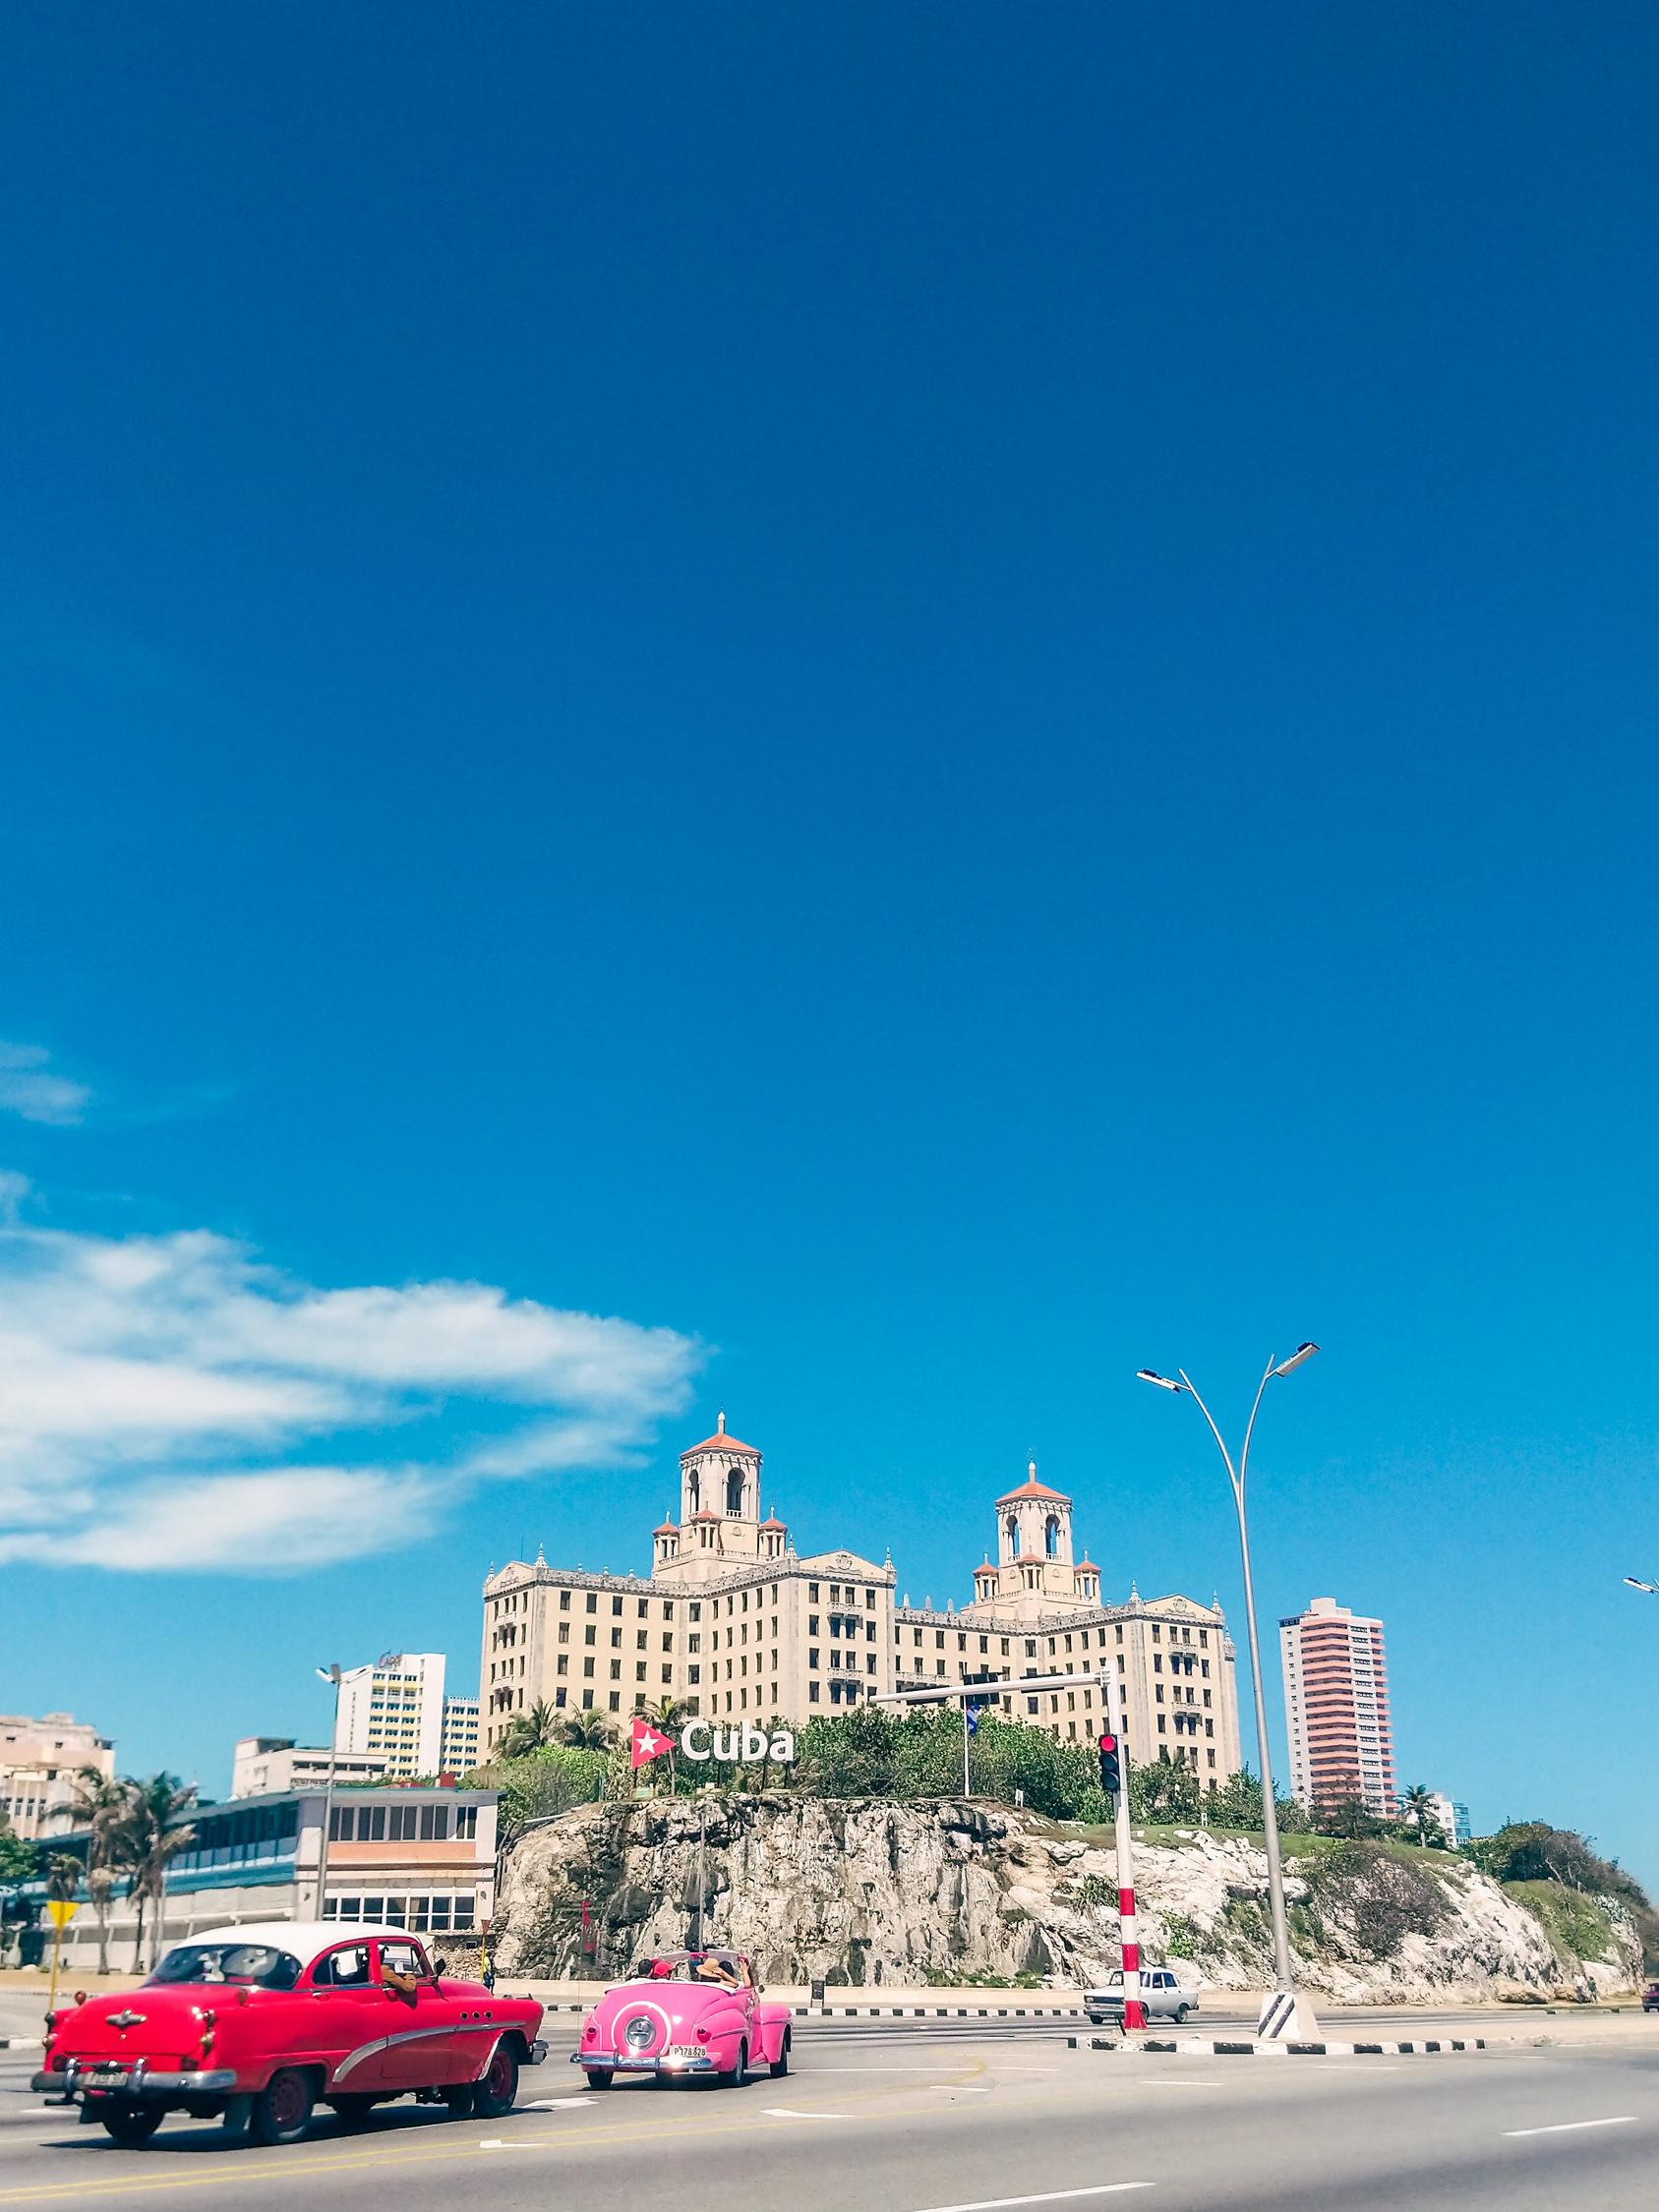 View of Hotel Nacional in Havana Cuba from the malecon seawall.